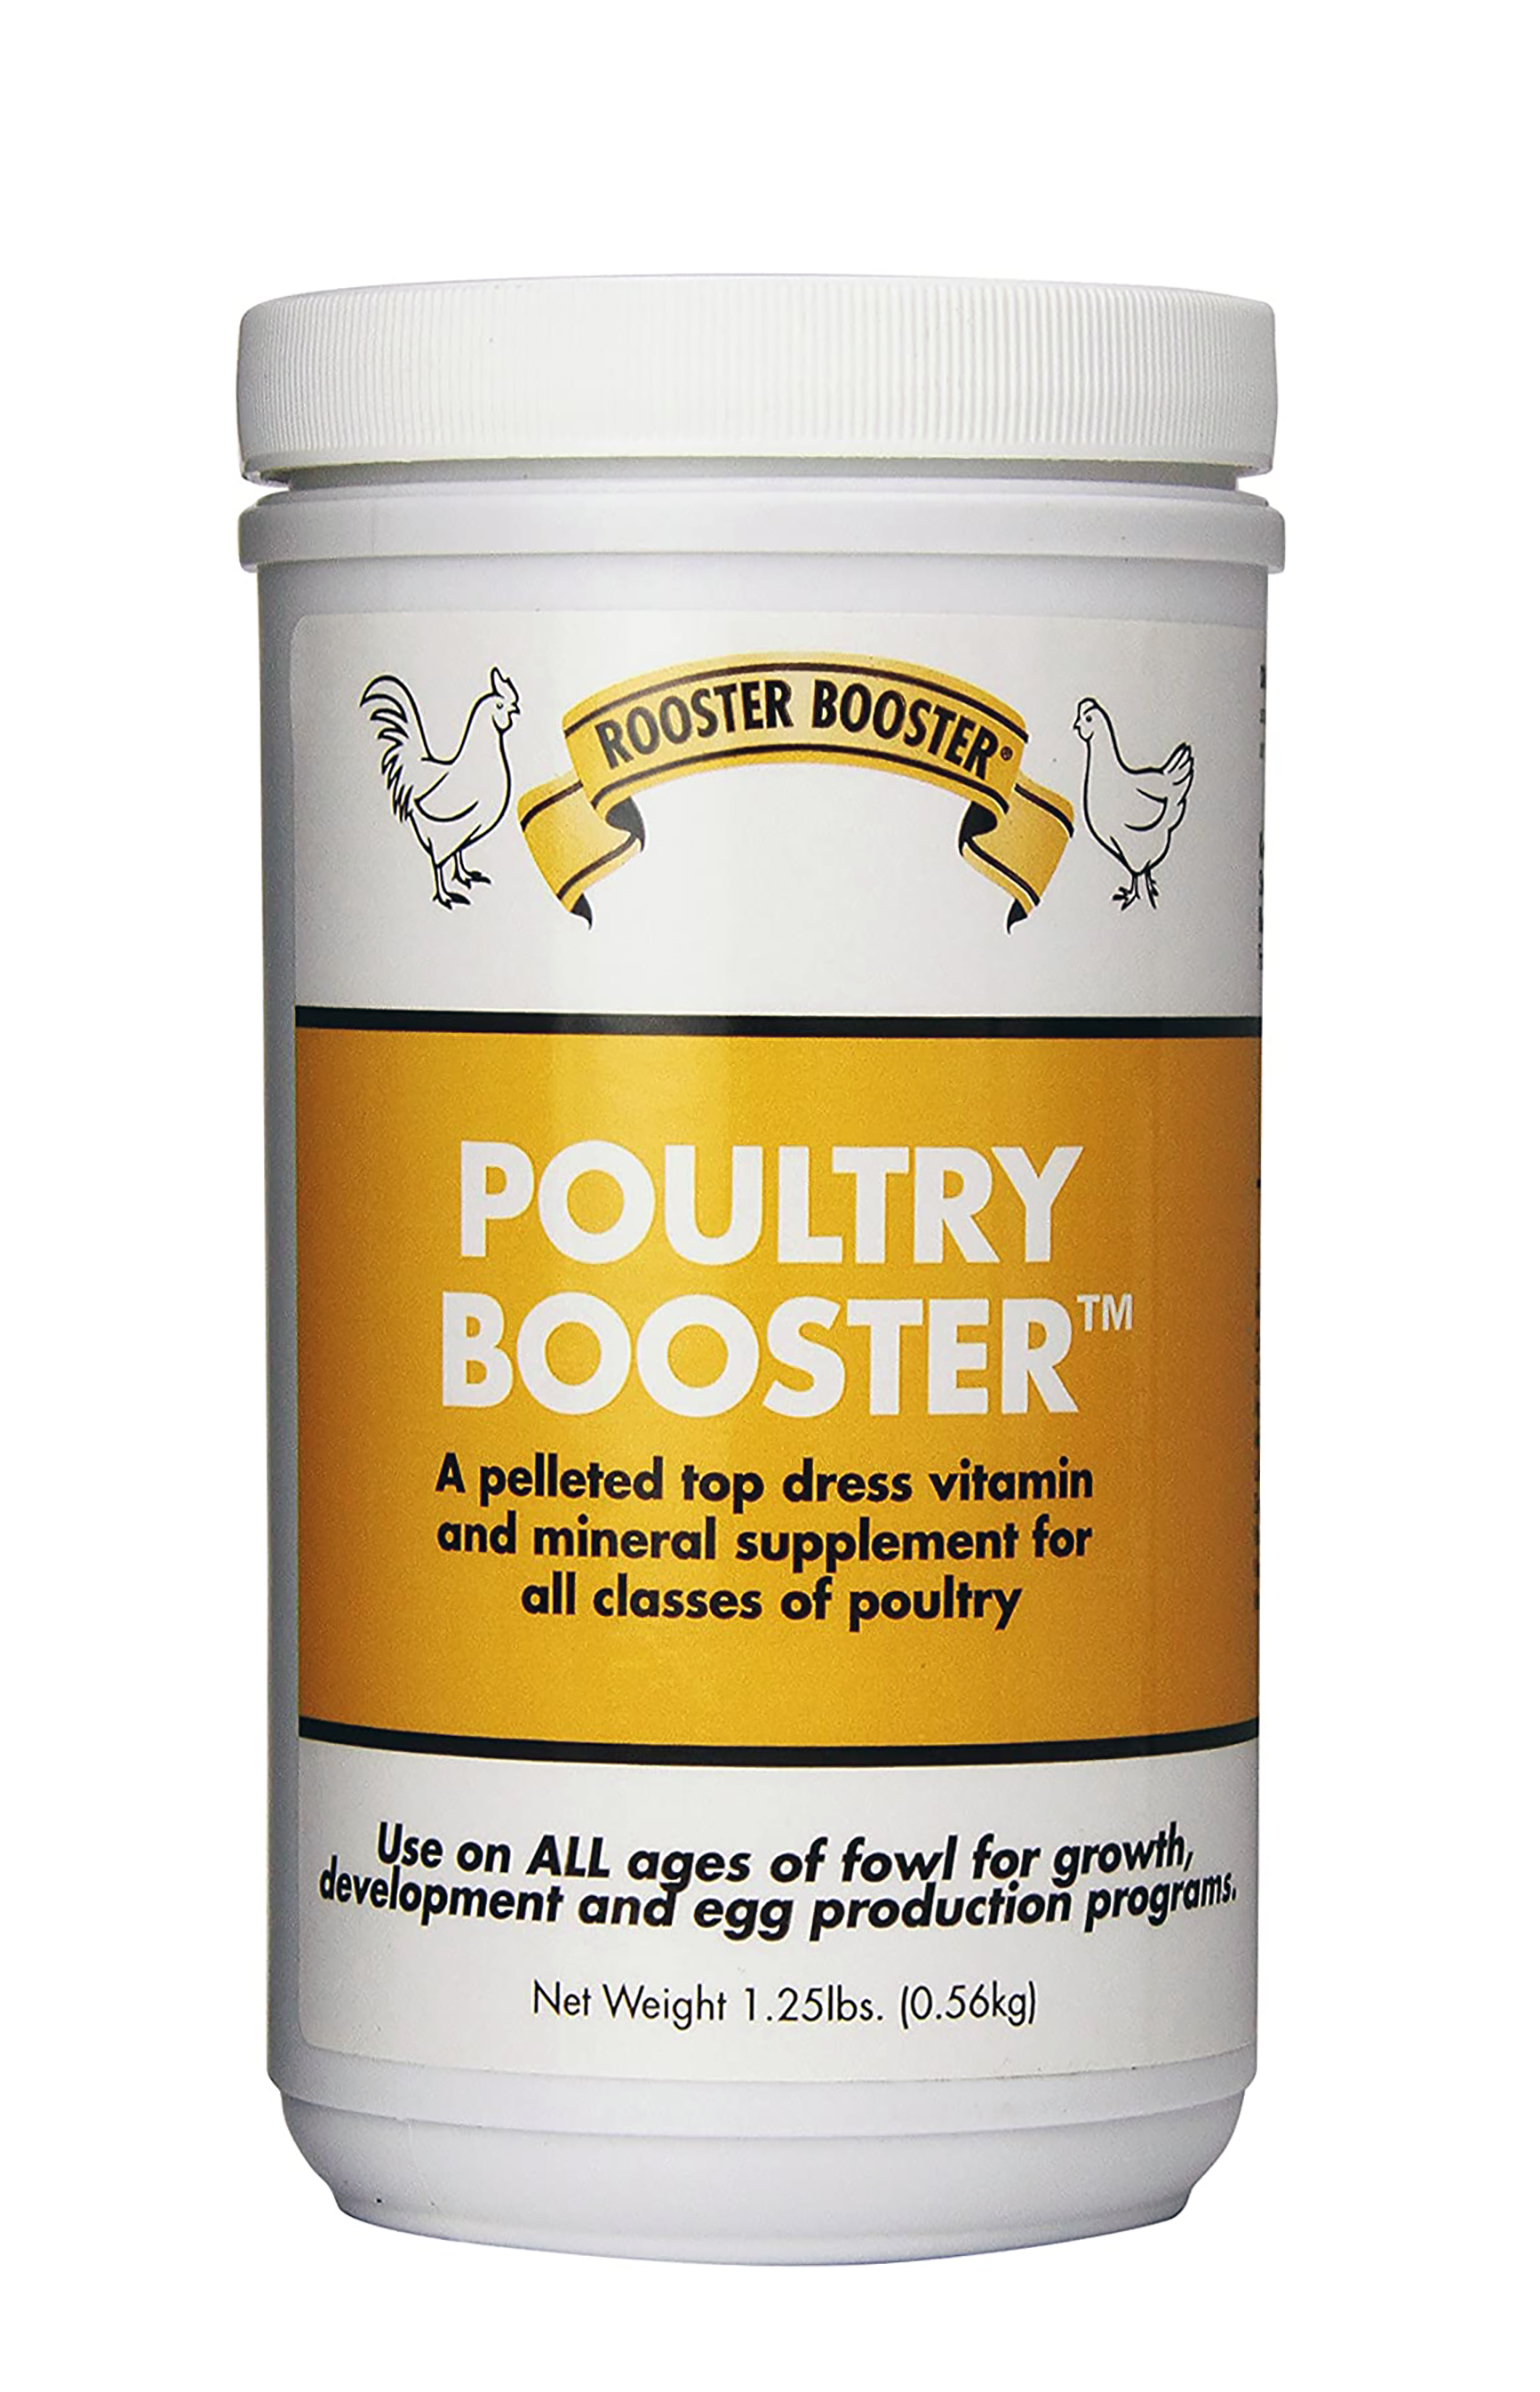 Poultry Booster review